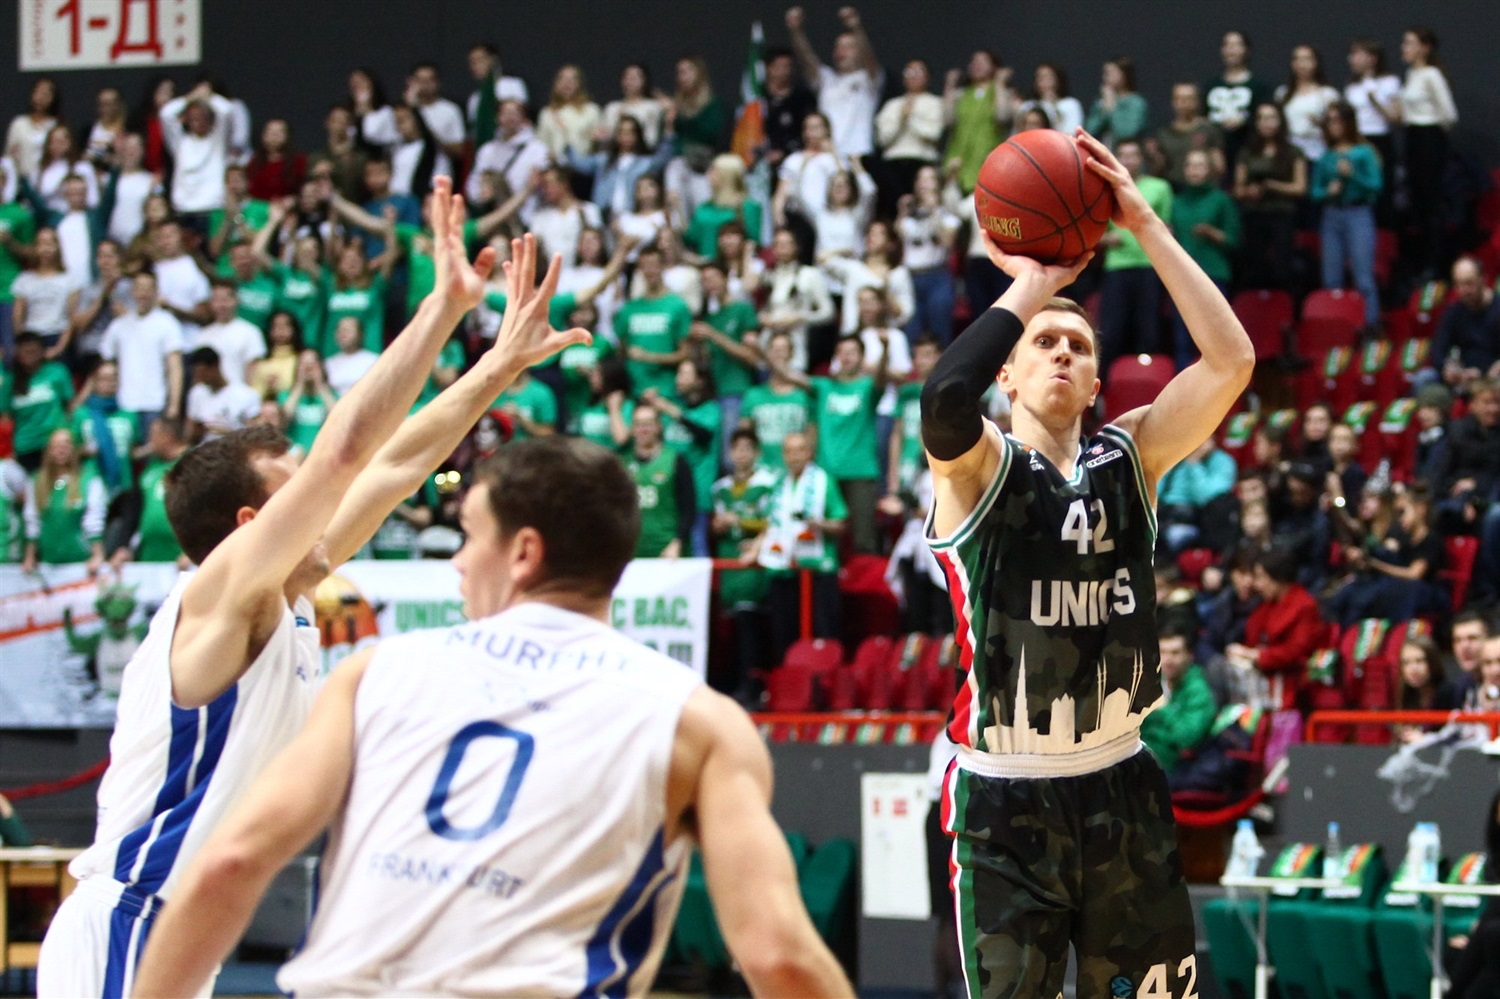 Evgeny Kolesnikov - UNICS Kazan (photo UNICS) - EC18